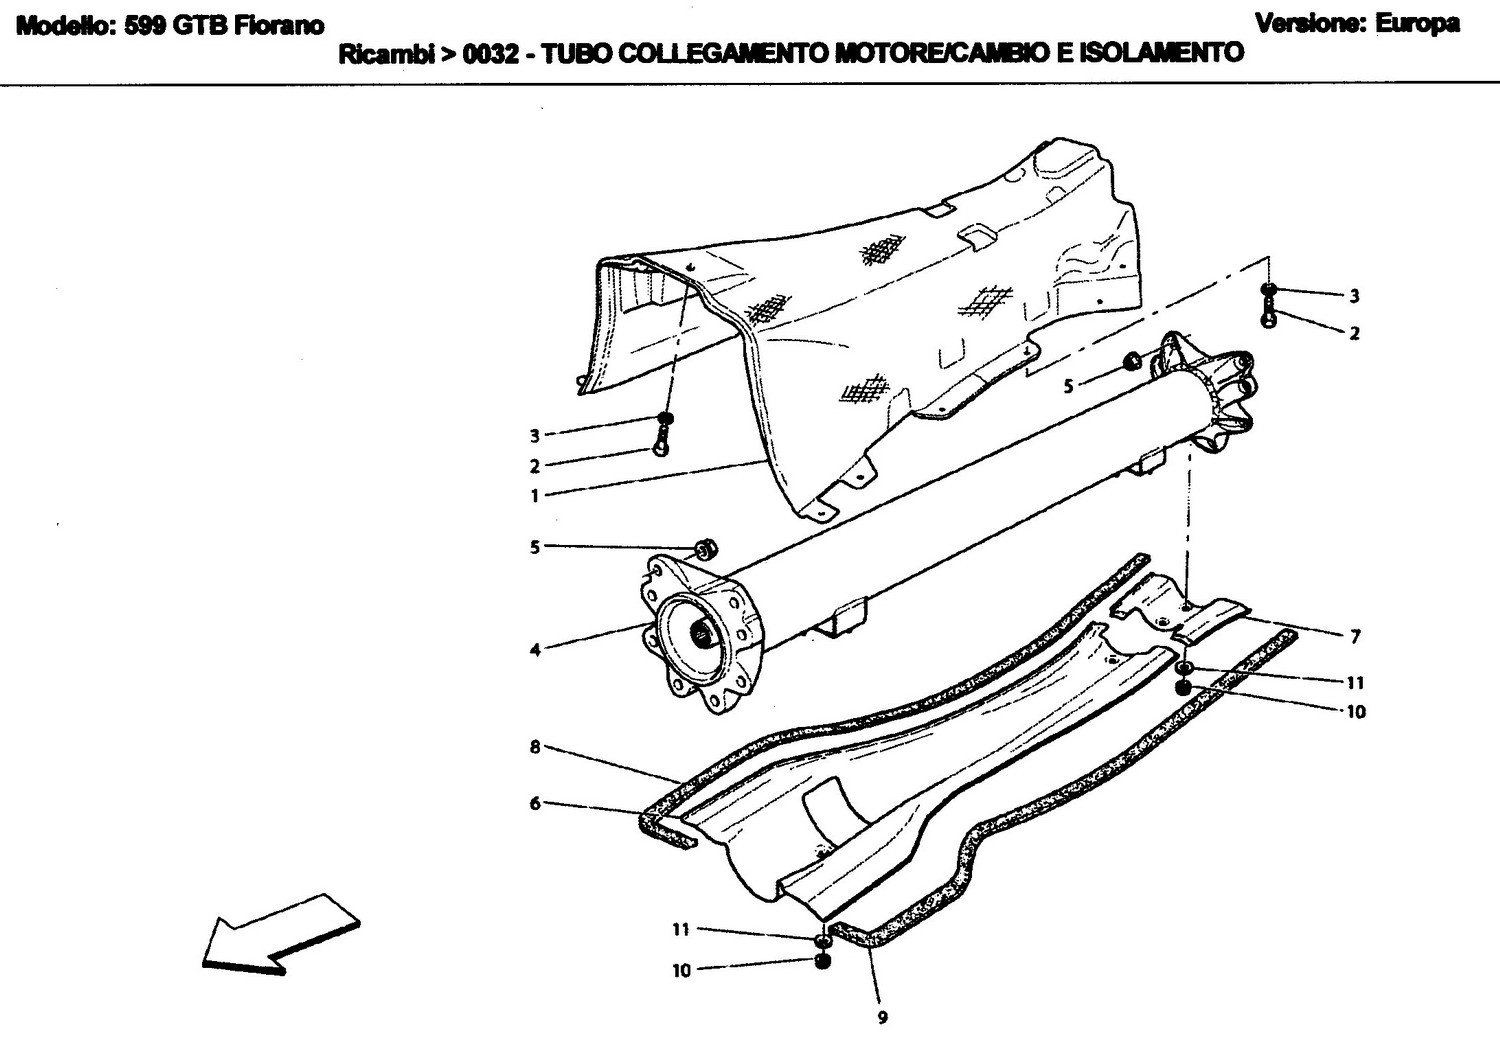 ENGINE/GEARBOX CONNECTING TUBE AND INSULATION